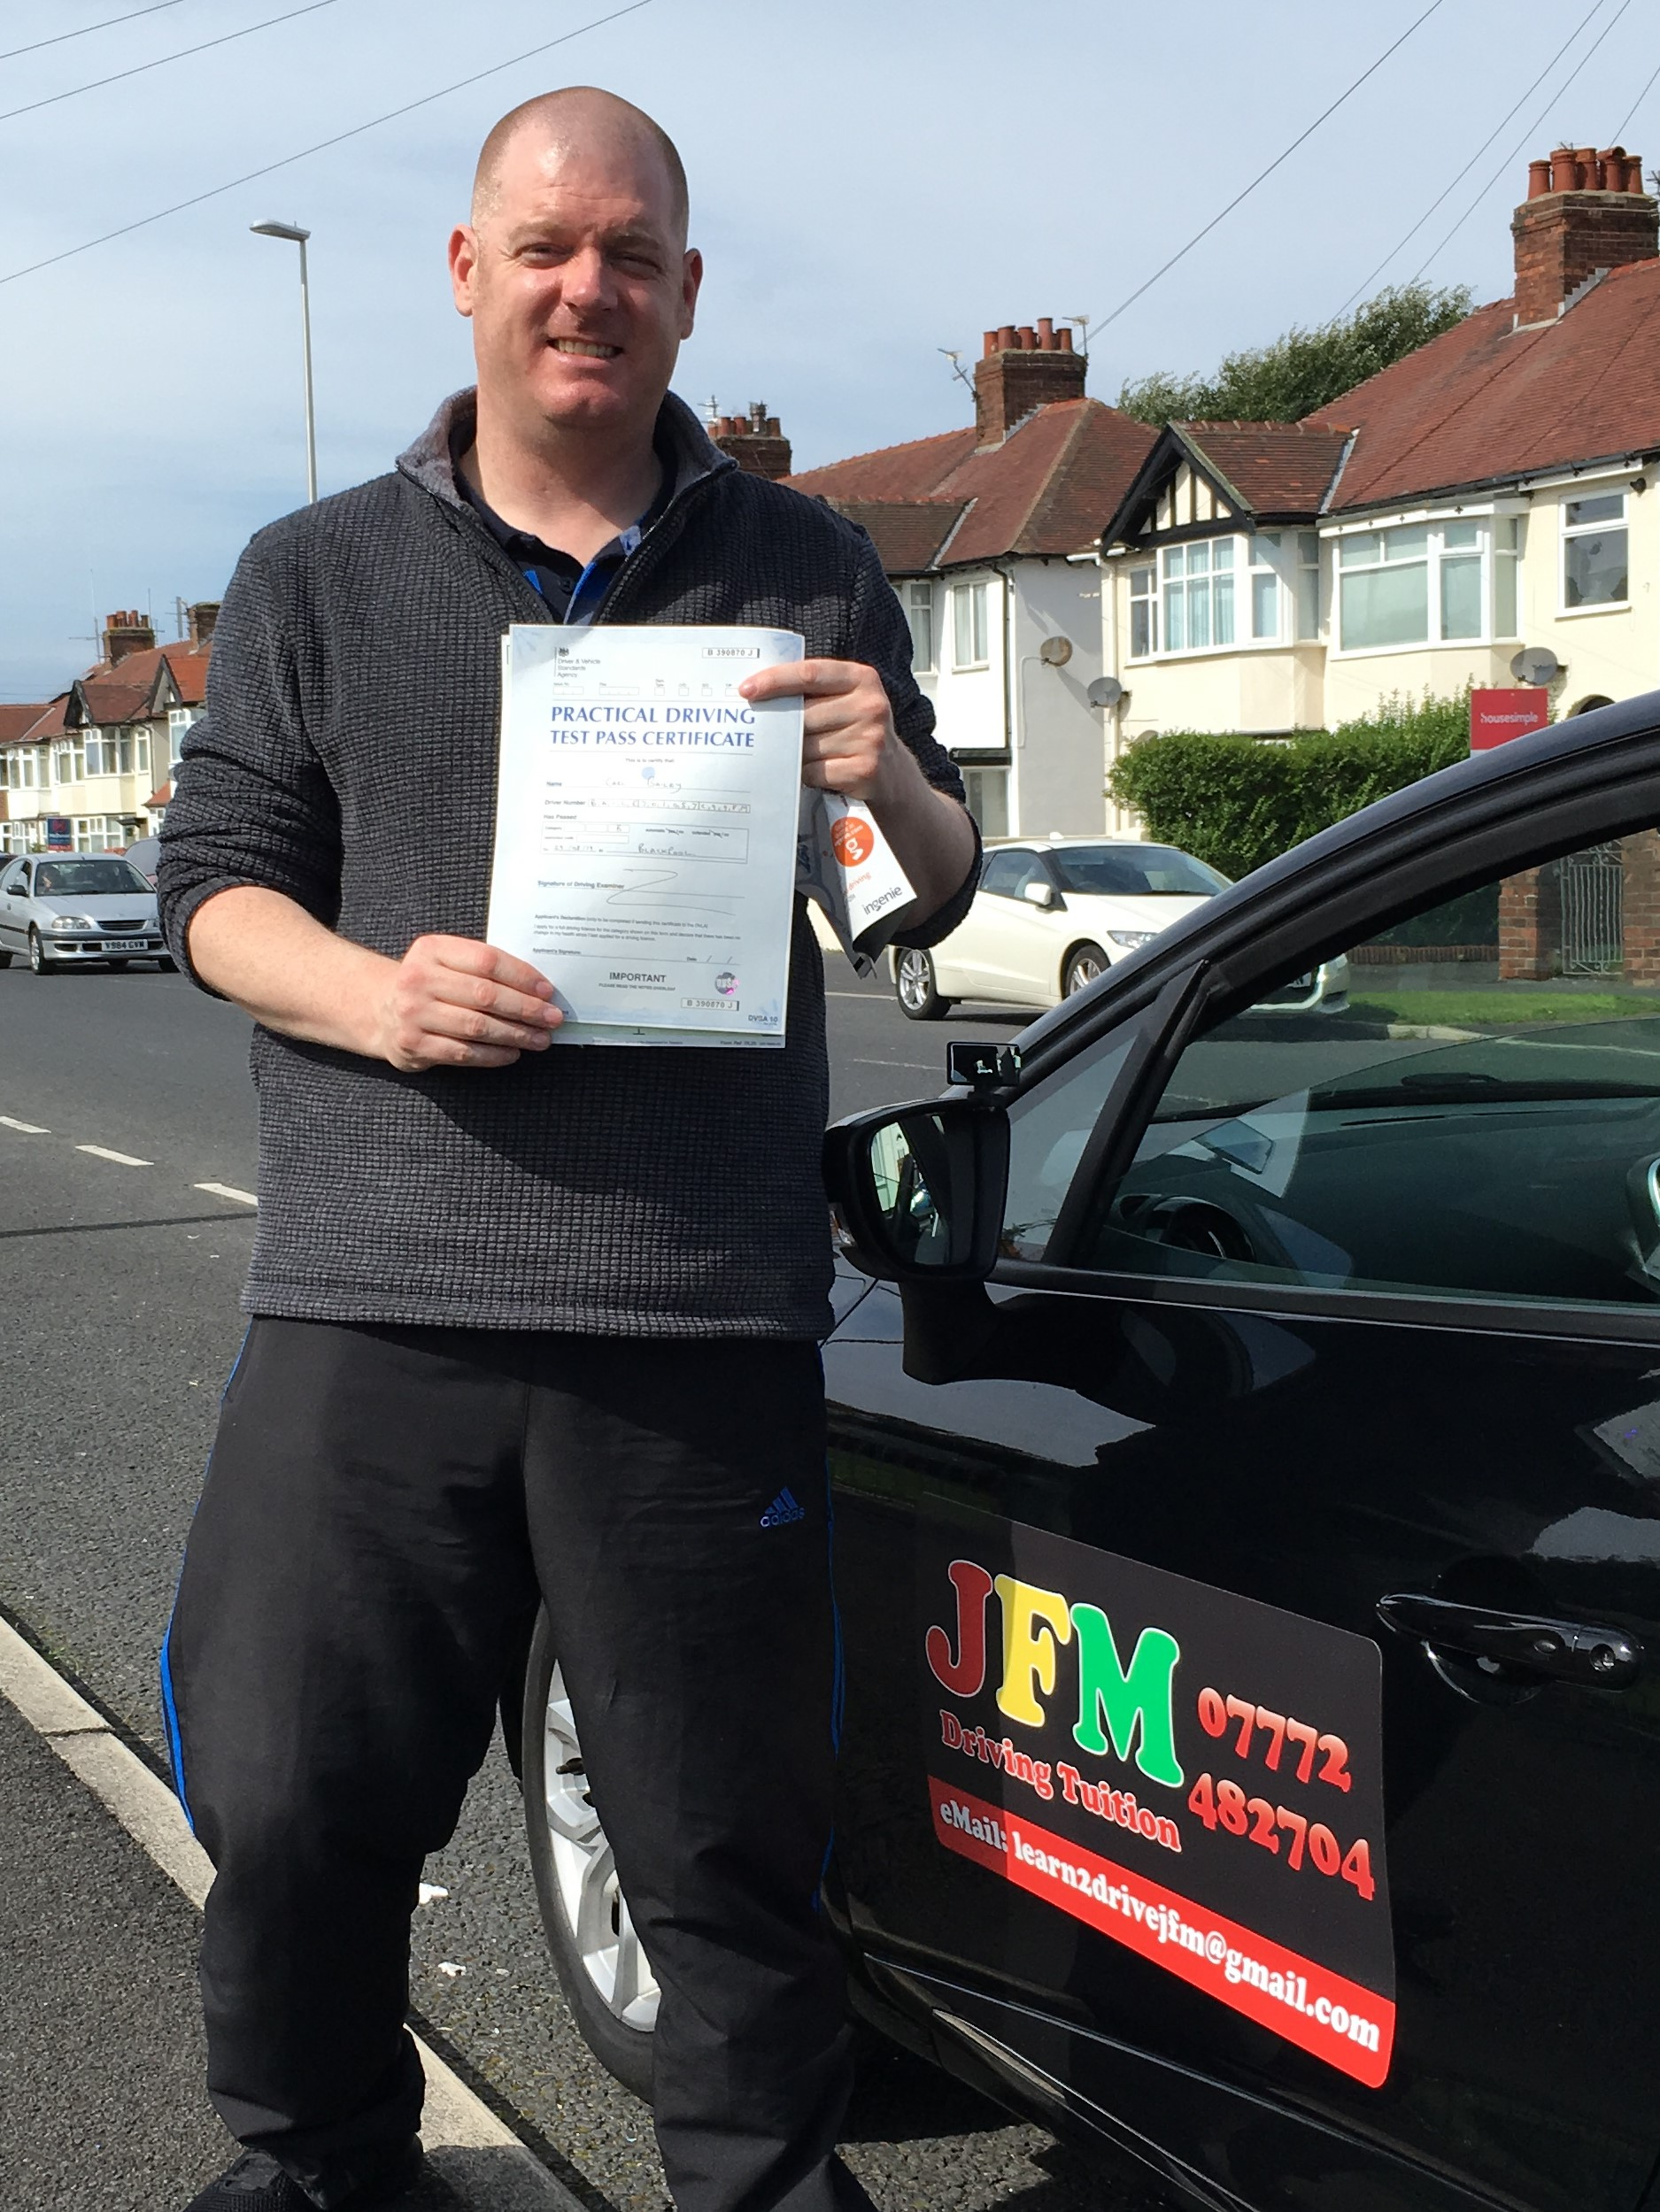 Carl Bailey 1st time pass driving test 29 Aug 19 with JFM Driving Tuition